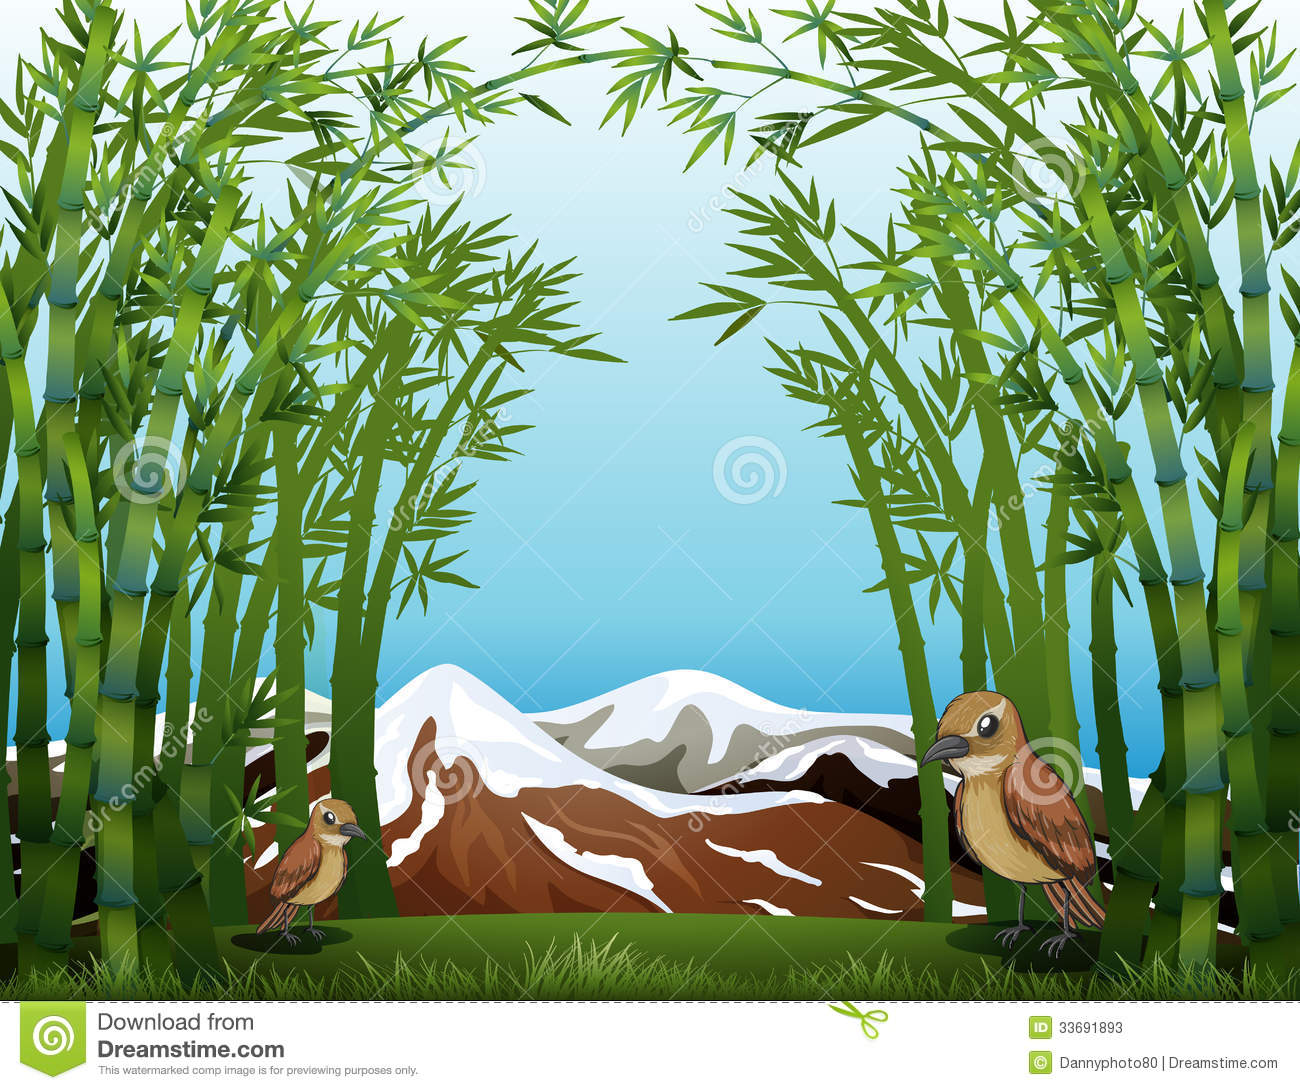 Forest views clipart #2